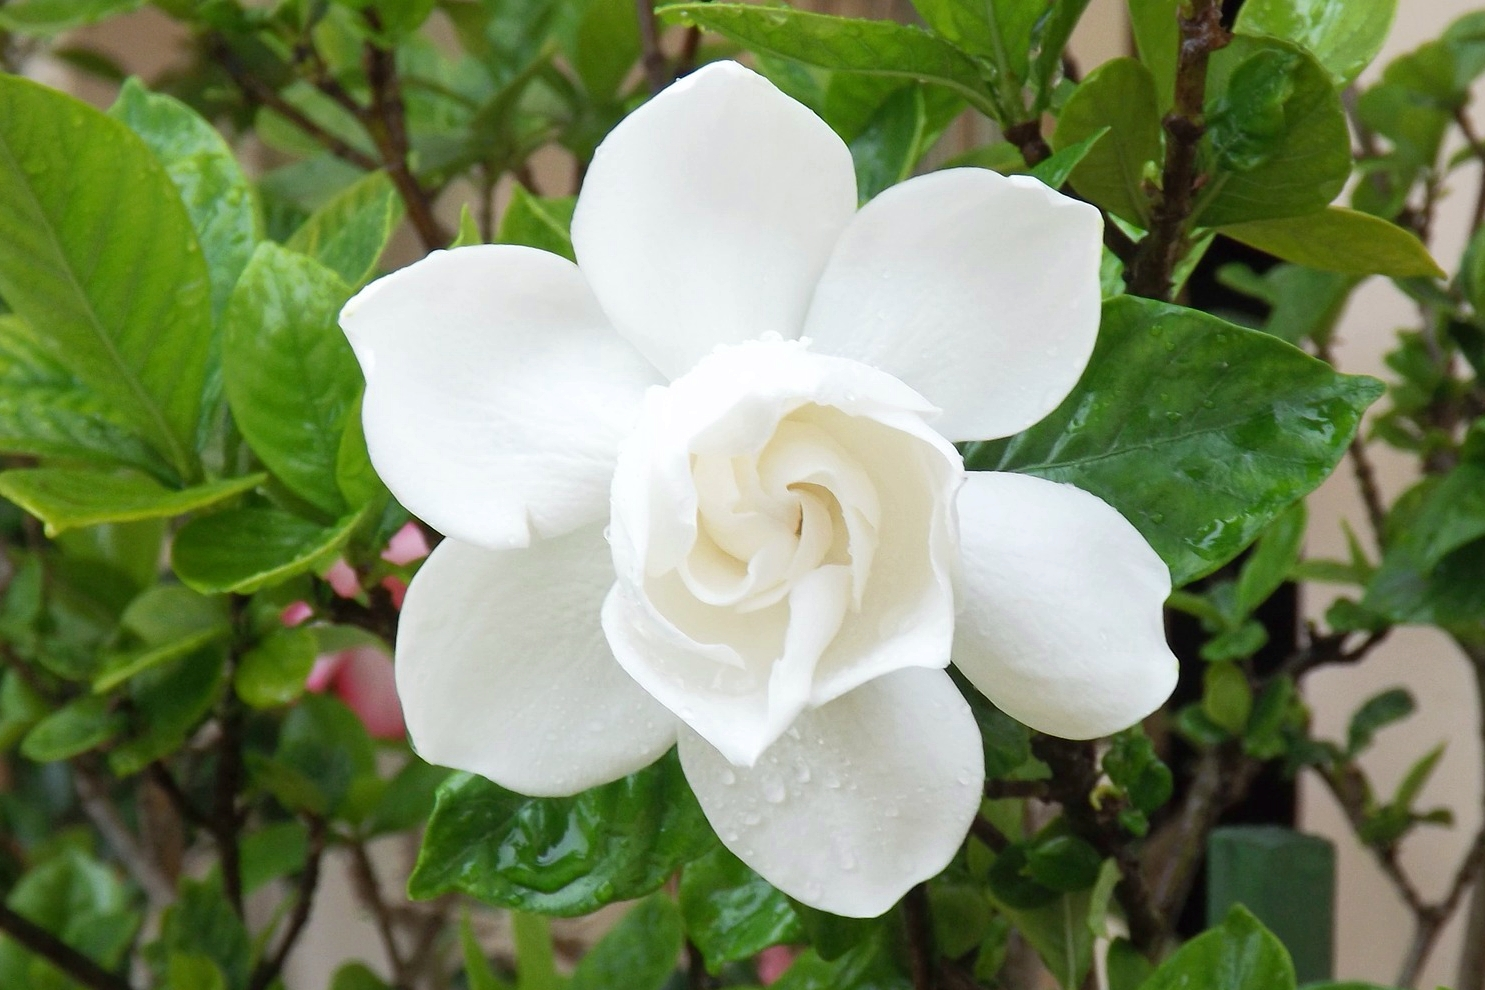 Gardenia How To Plant Grow And Care For Gardenias The Old Farmer S Almanac